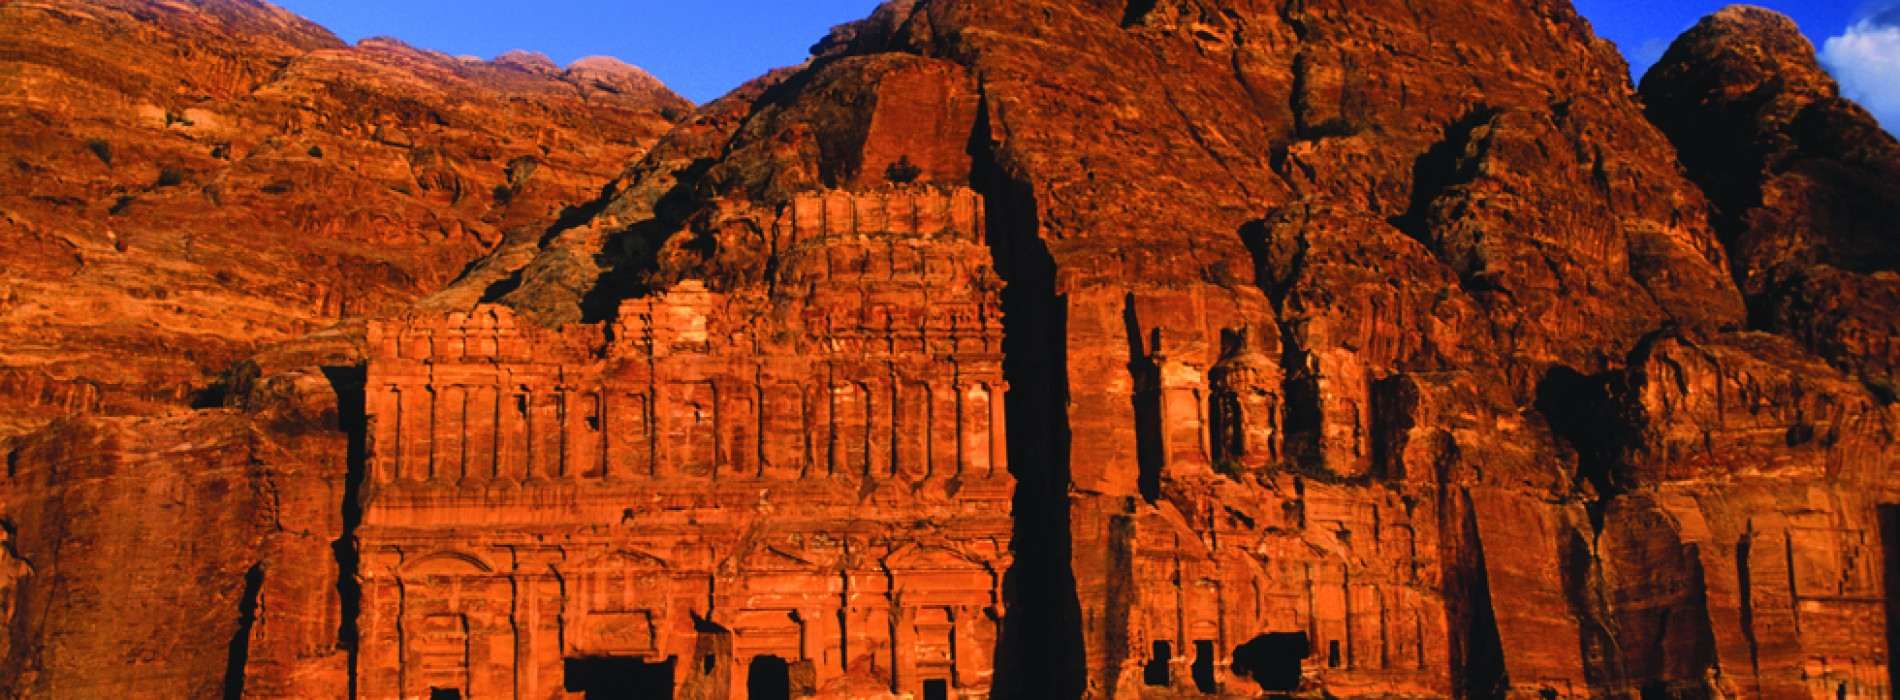 A Destination Wedding in Jordan will get you a Luxury Honeymoon of 7 Nights sponsored by Jordan Tourism Board!